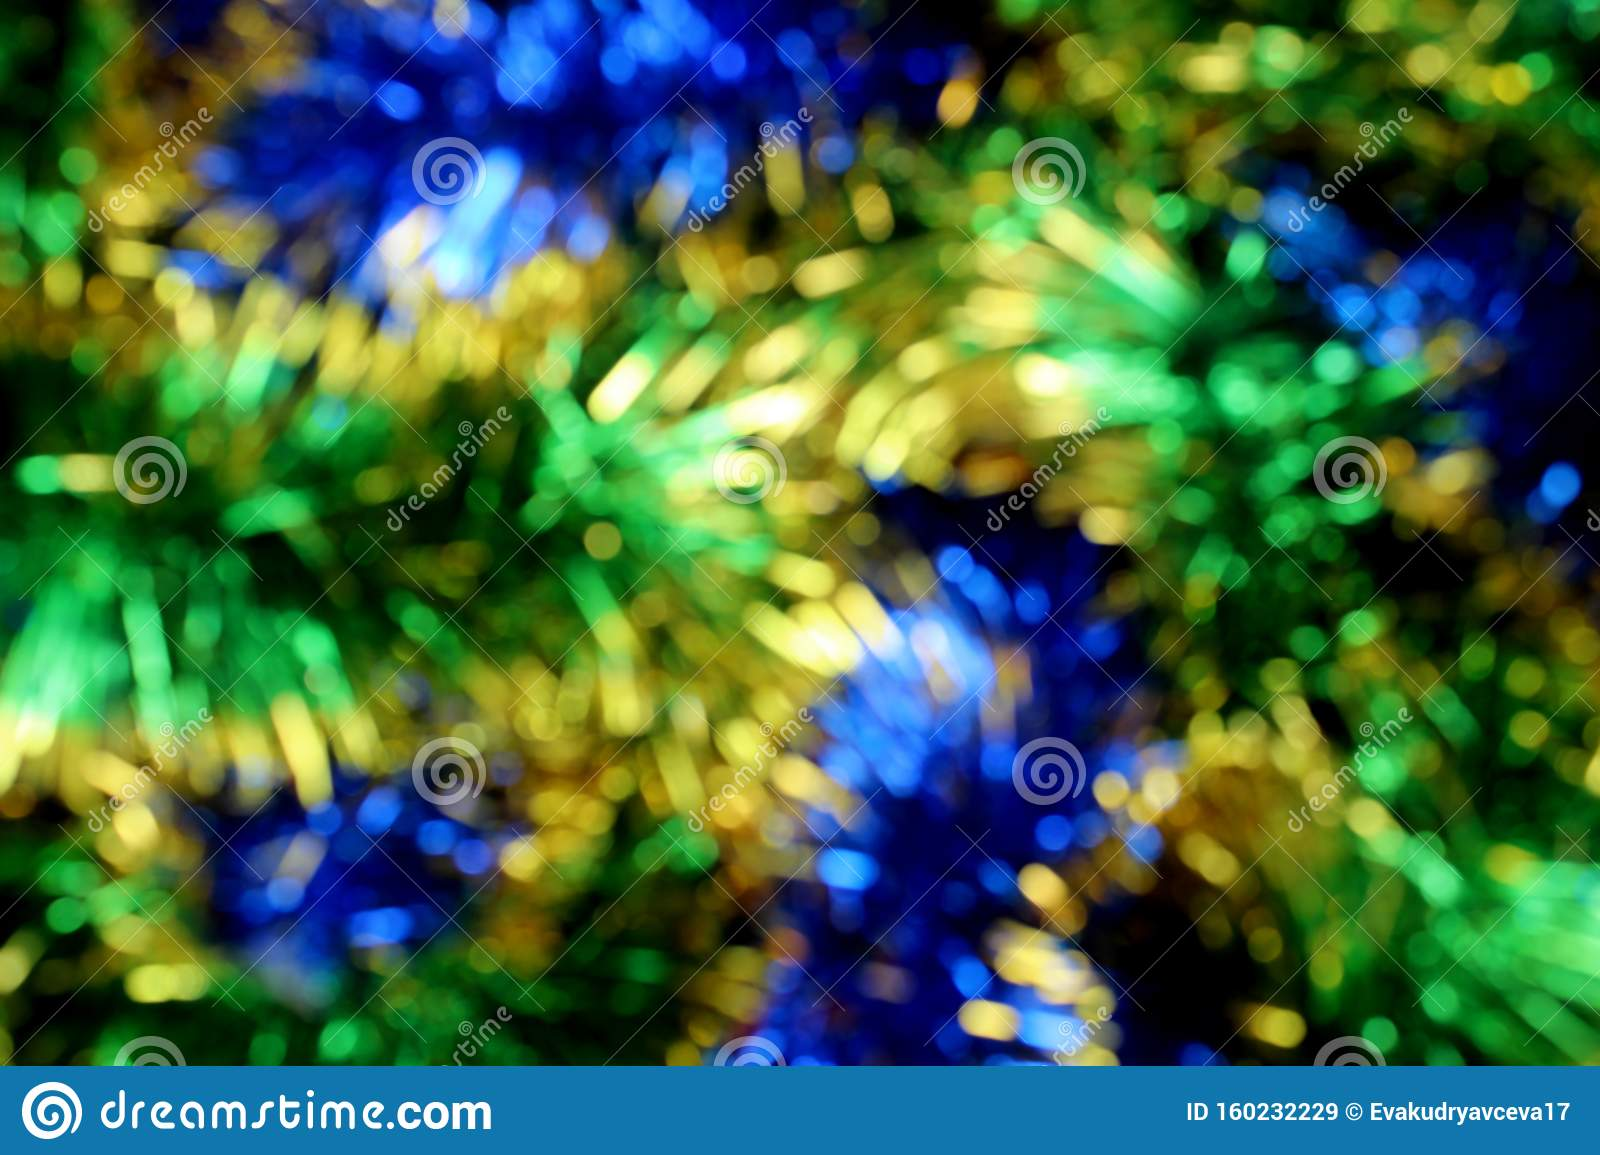 Blurred Blue Green Shiny Christmas Tinsel Texture For ...